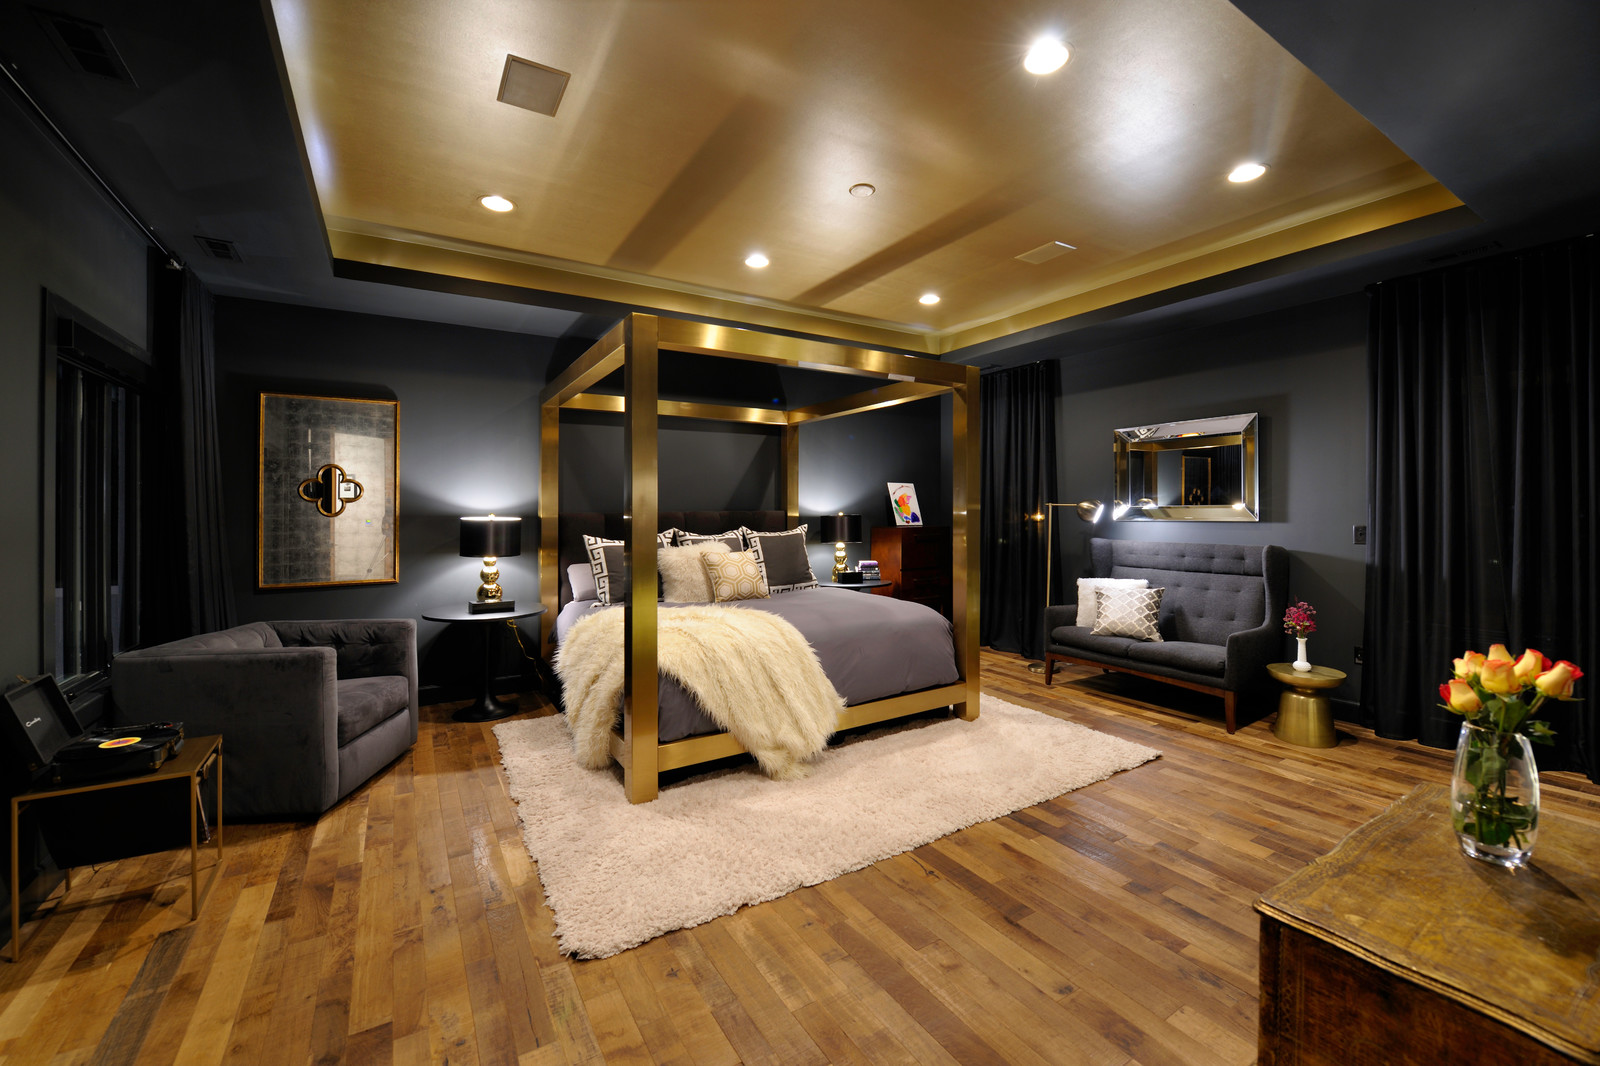 7 luxurious black and gold bedroom ideas to imitate  aprylann